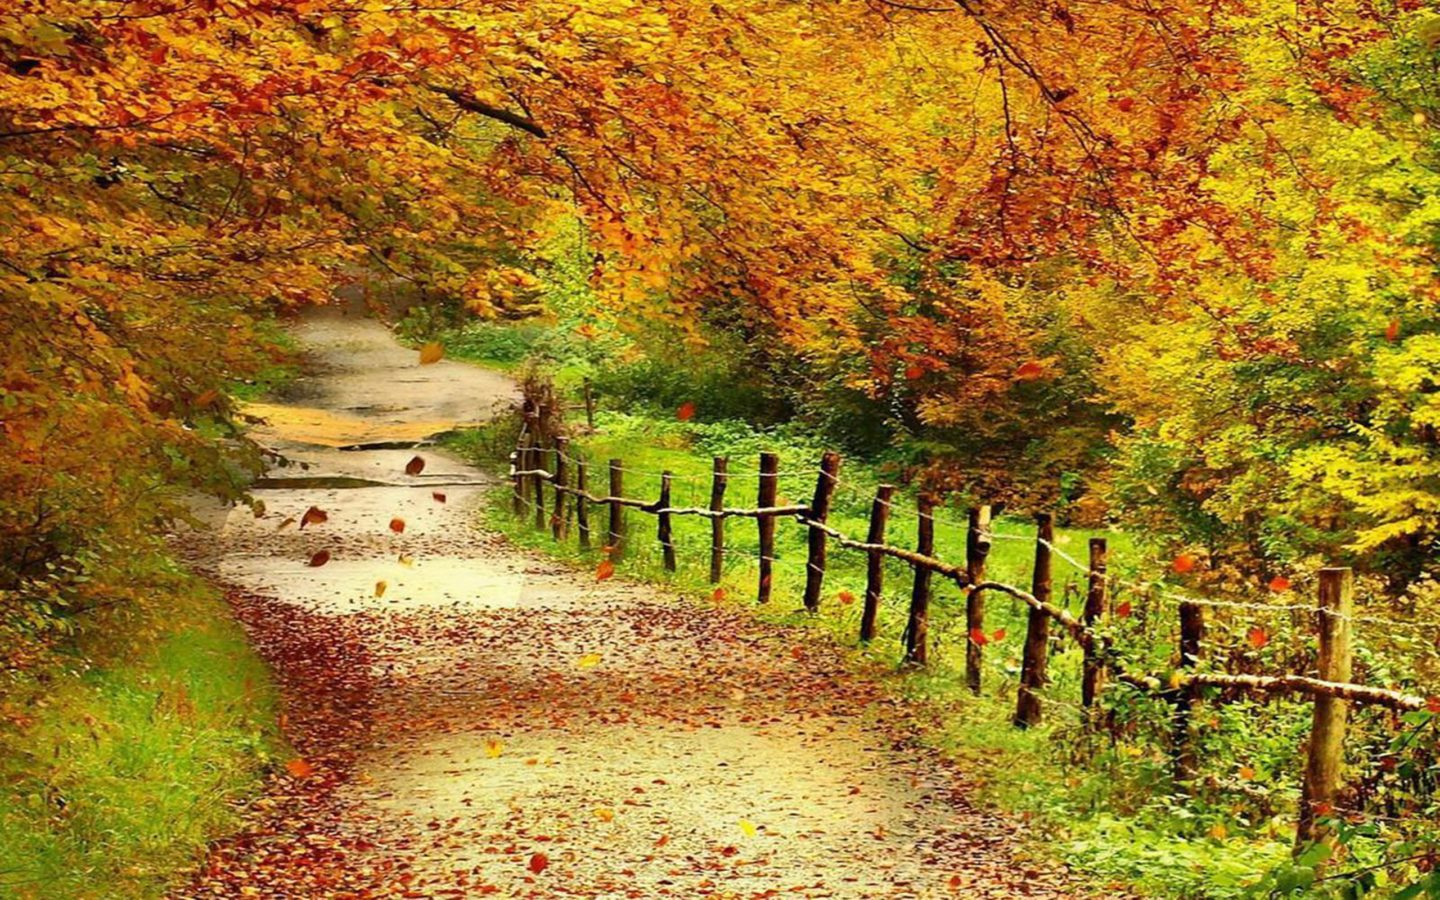 Fall Verse Wallpaper Beautiful Autumn Scenery Wallpapers Full Hd Wallpaper